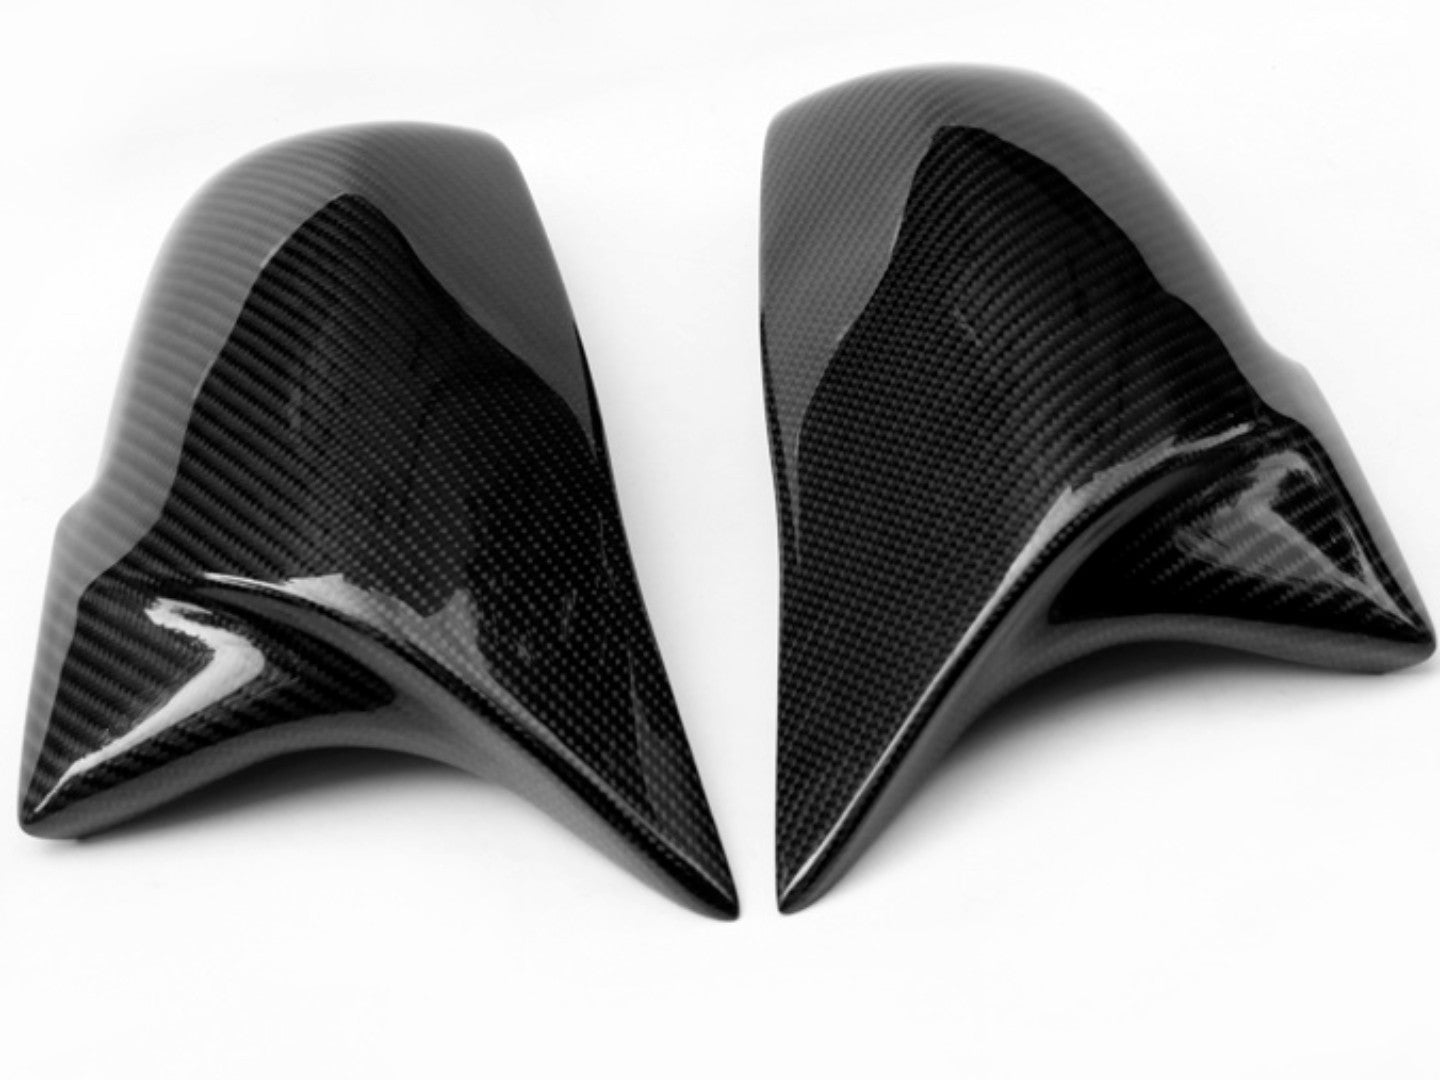 BMW ///M MIRROR HOUSINGS -  - Yomato Carbon - Montreal Canada